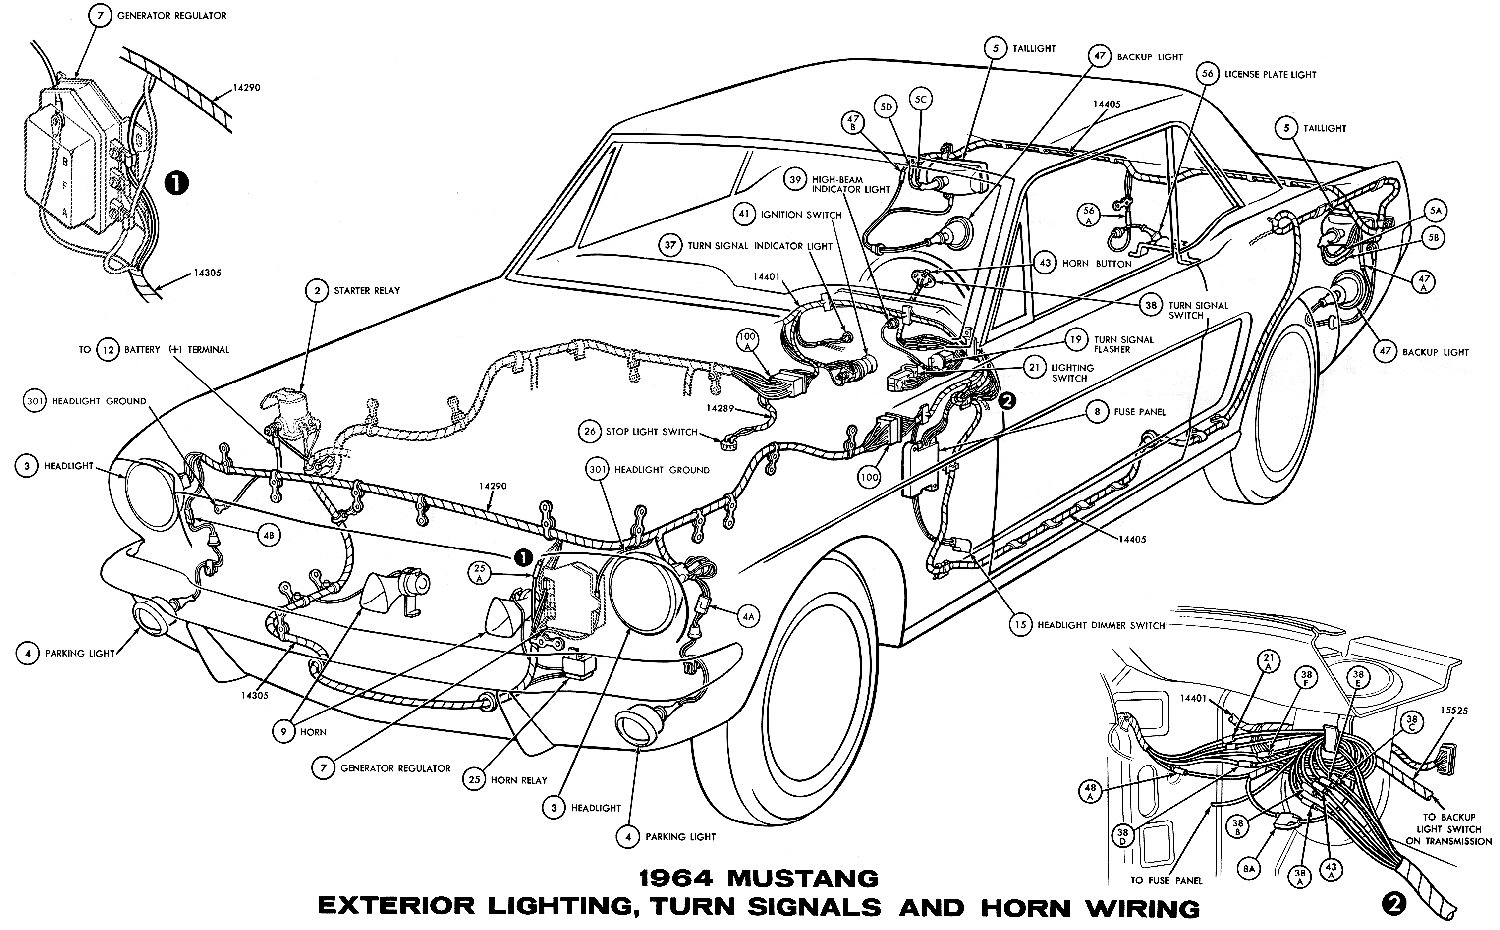 1964h 1964 mustang wiring diagrams average joe restoration 1967 mustang turn signal wiring diagram at cos-gaming.co